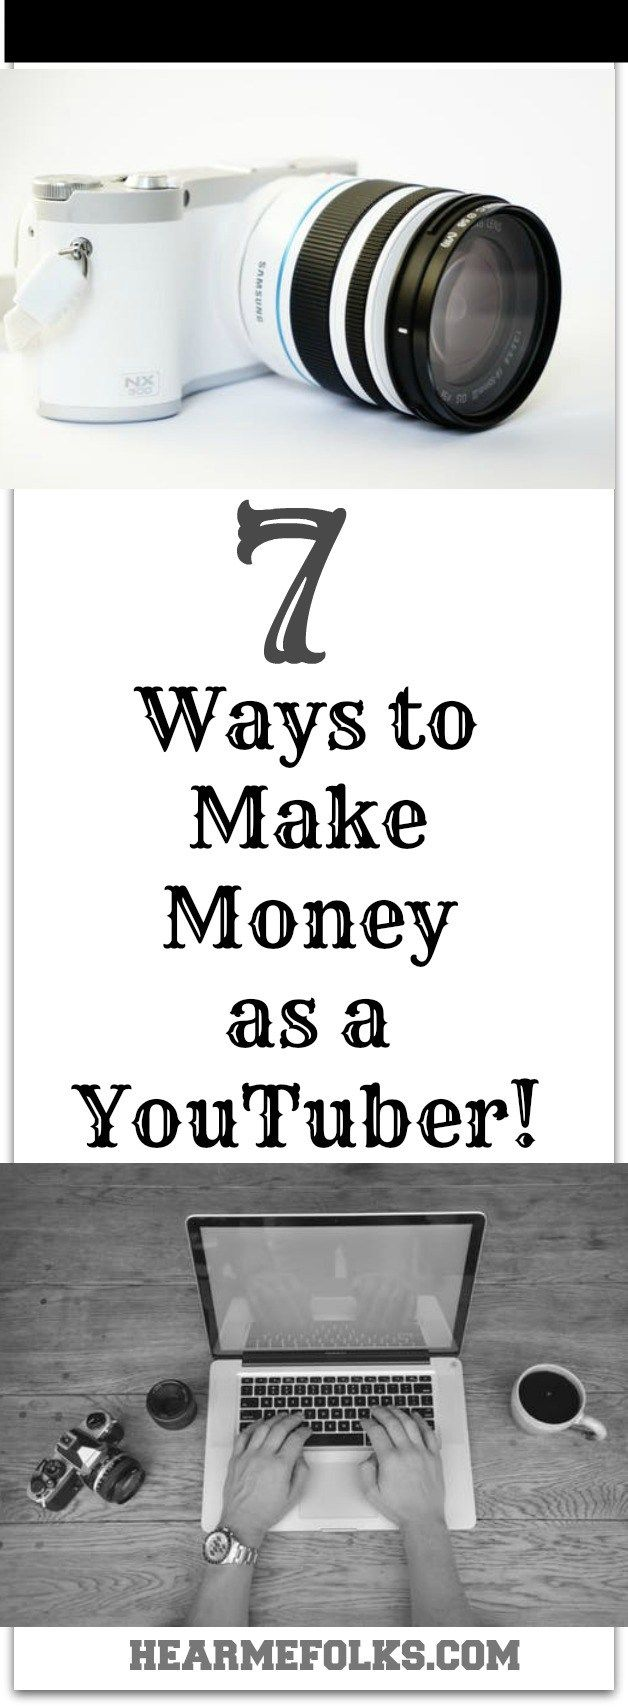 Proven Ways to Make Money Online, i truly hope this helps you in any endeavors youve had to face thus far. http://l.instagram.com/?u=http%3A%2F%2Fhome.iudder.ru%2Fearn-money-with-pay-per-click%2F&e=ATM0V86fcCb2S6L4Pj9rWQVRYWbEvLVeaHpIzJLC4OEZb2tnRrH3_DrqMDtUWP8  Does it sound easy as drinking a glass of water, changing IP may work here and there. I worked day and night on that blog while keeping two full-time offline jobs, which can be paid out through PayPal or redeemed for gift cards…